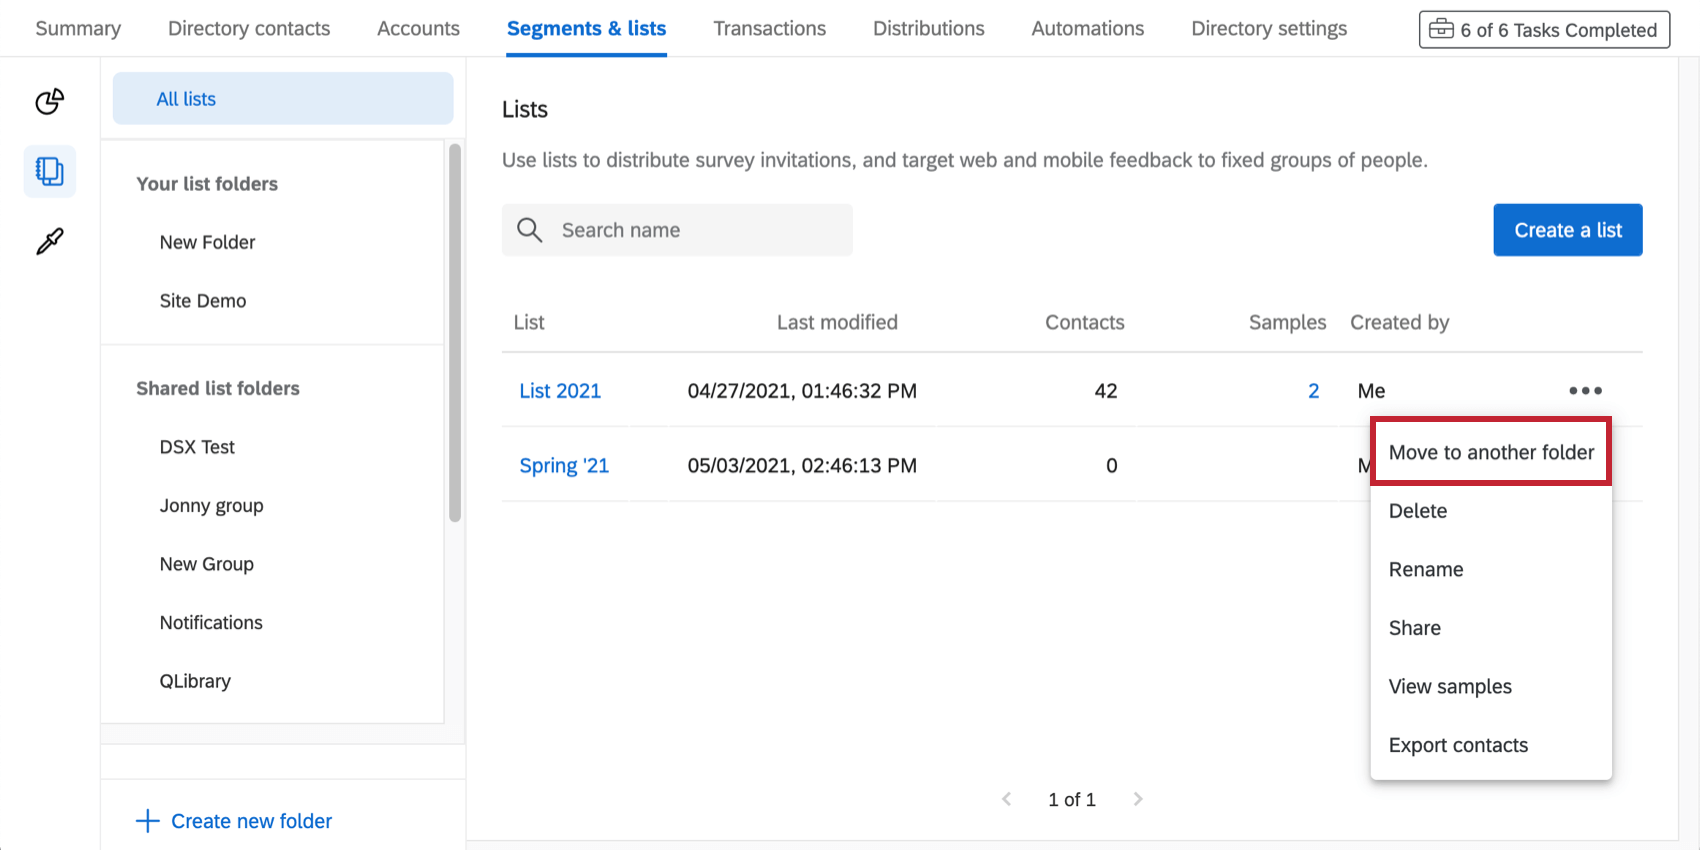 Dropdown expanded next to a mailing list to show the share option